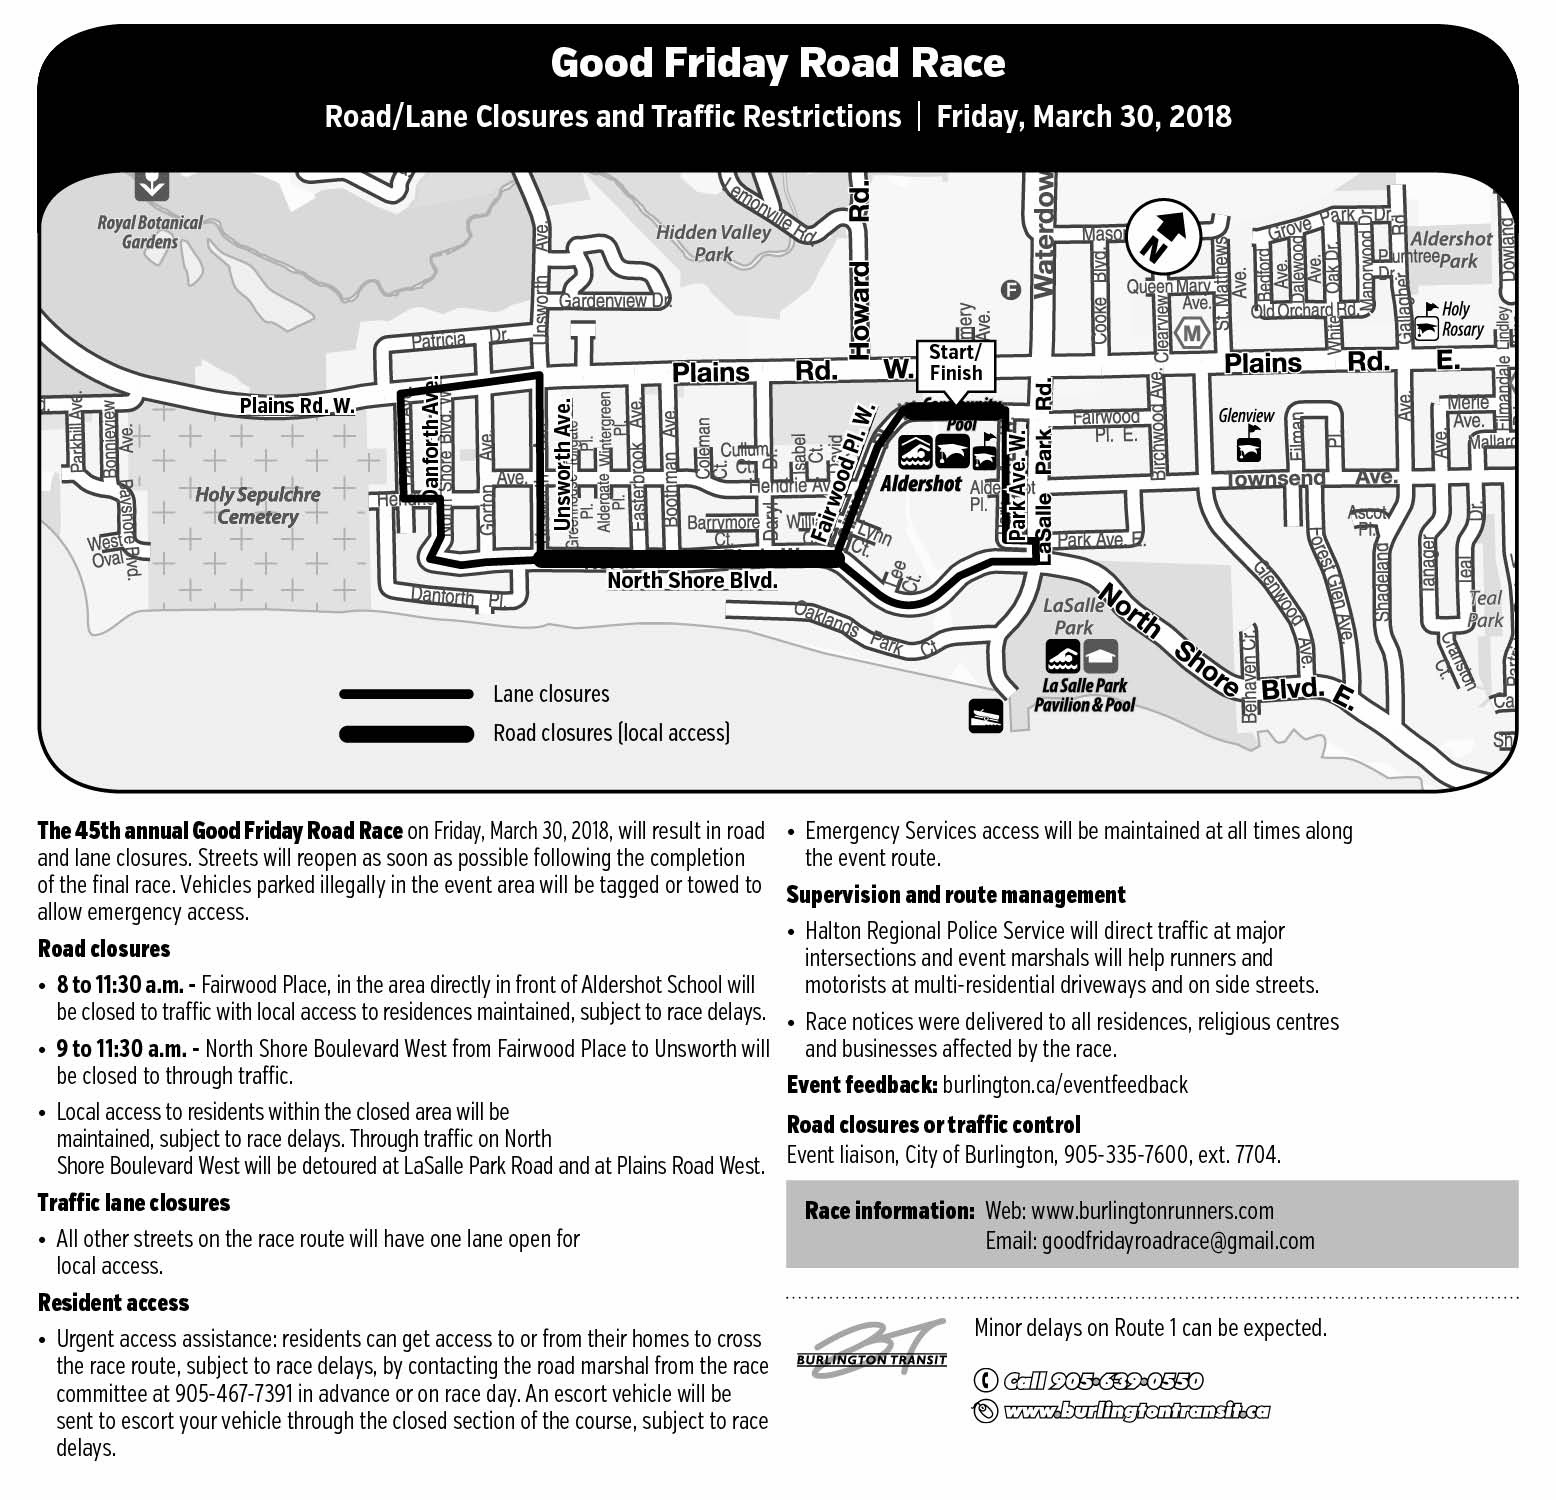 Map and details of Good Friday Road Race